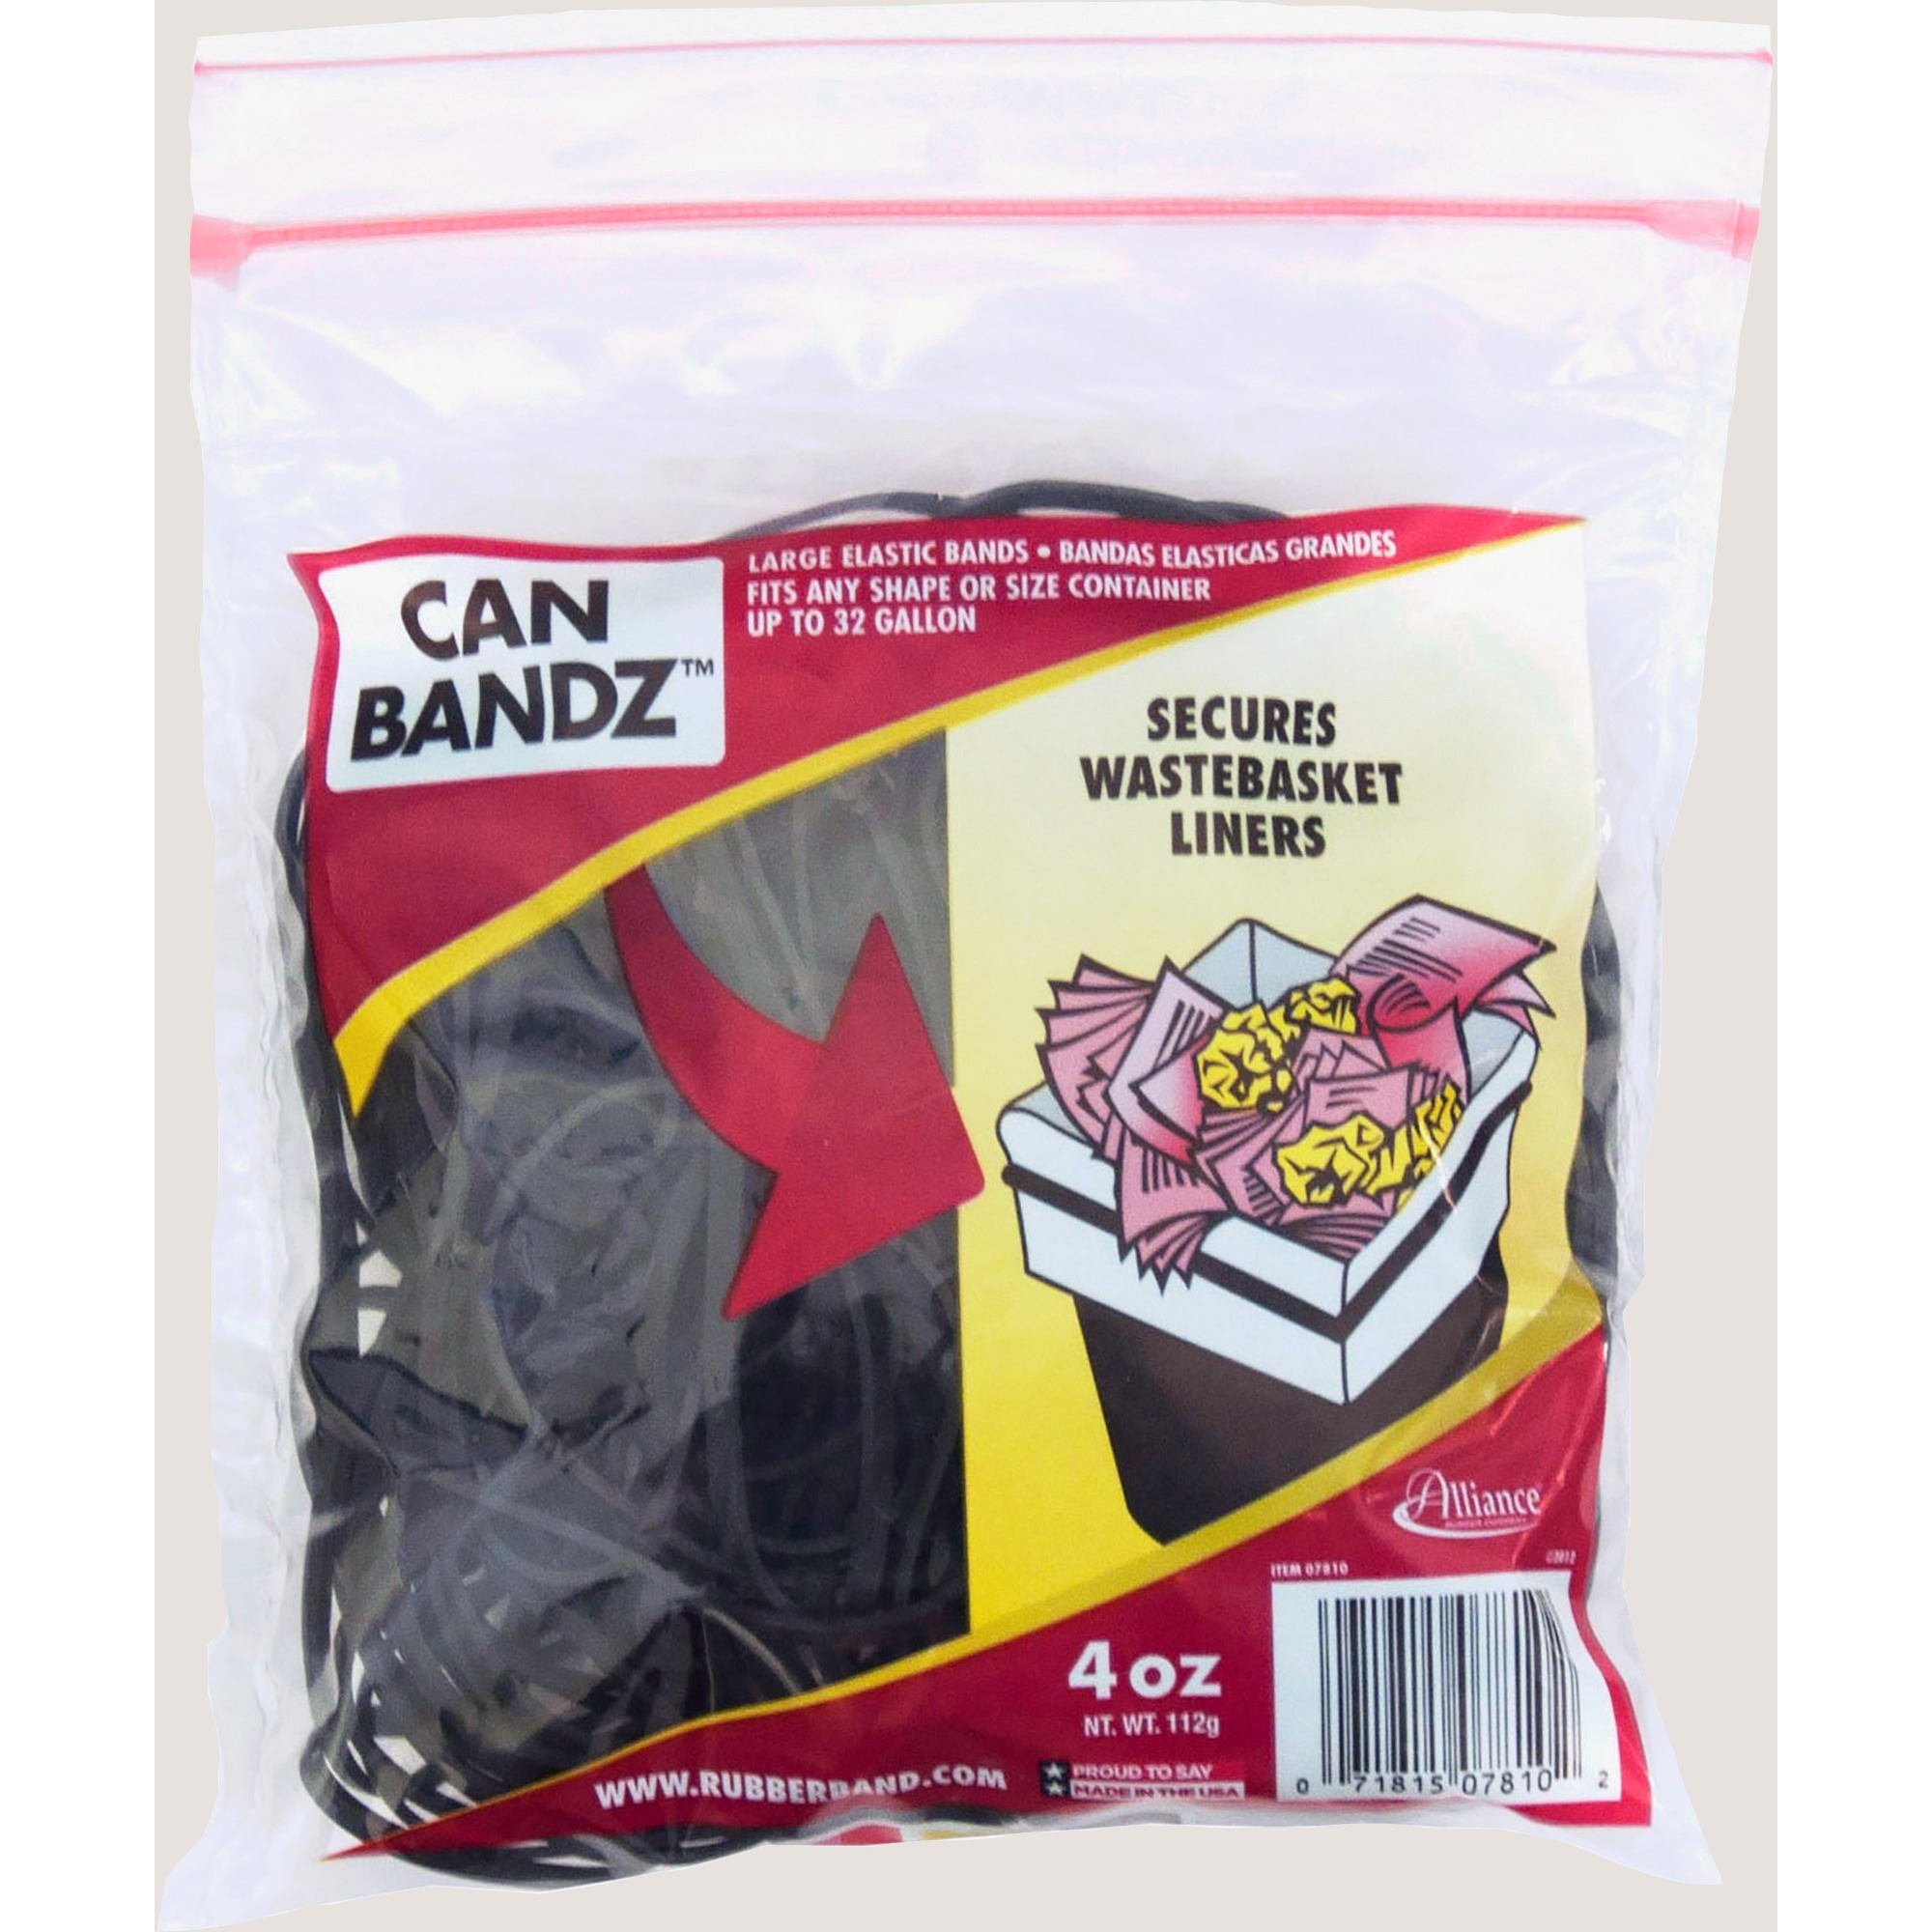 Alliance, Can Bandz #117B (7 x 1/8), Black 4oz. Zipper Bag